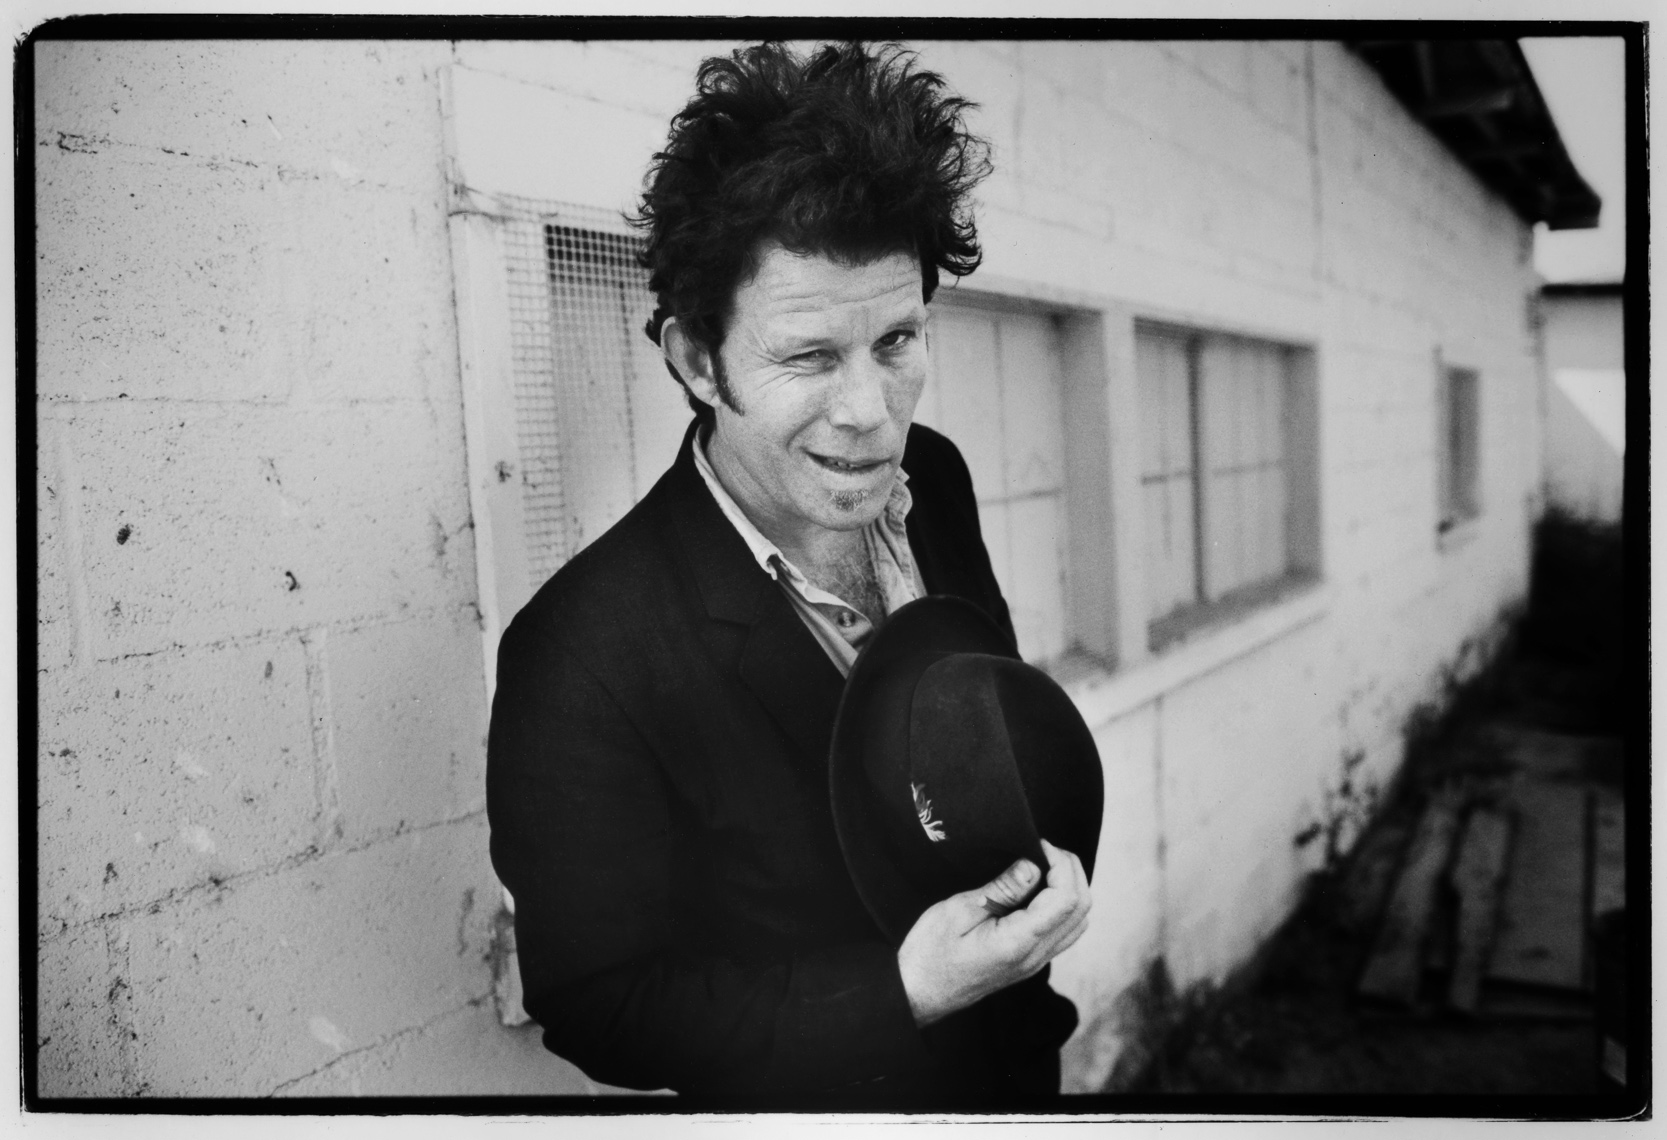 Tom Waits • Jason Grow Photography